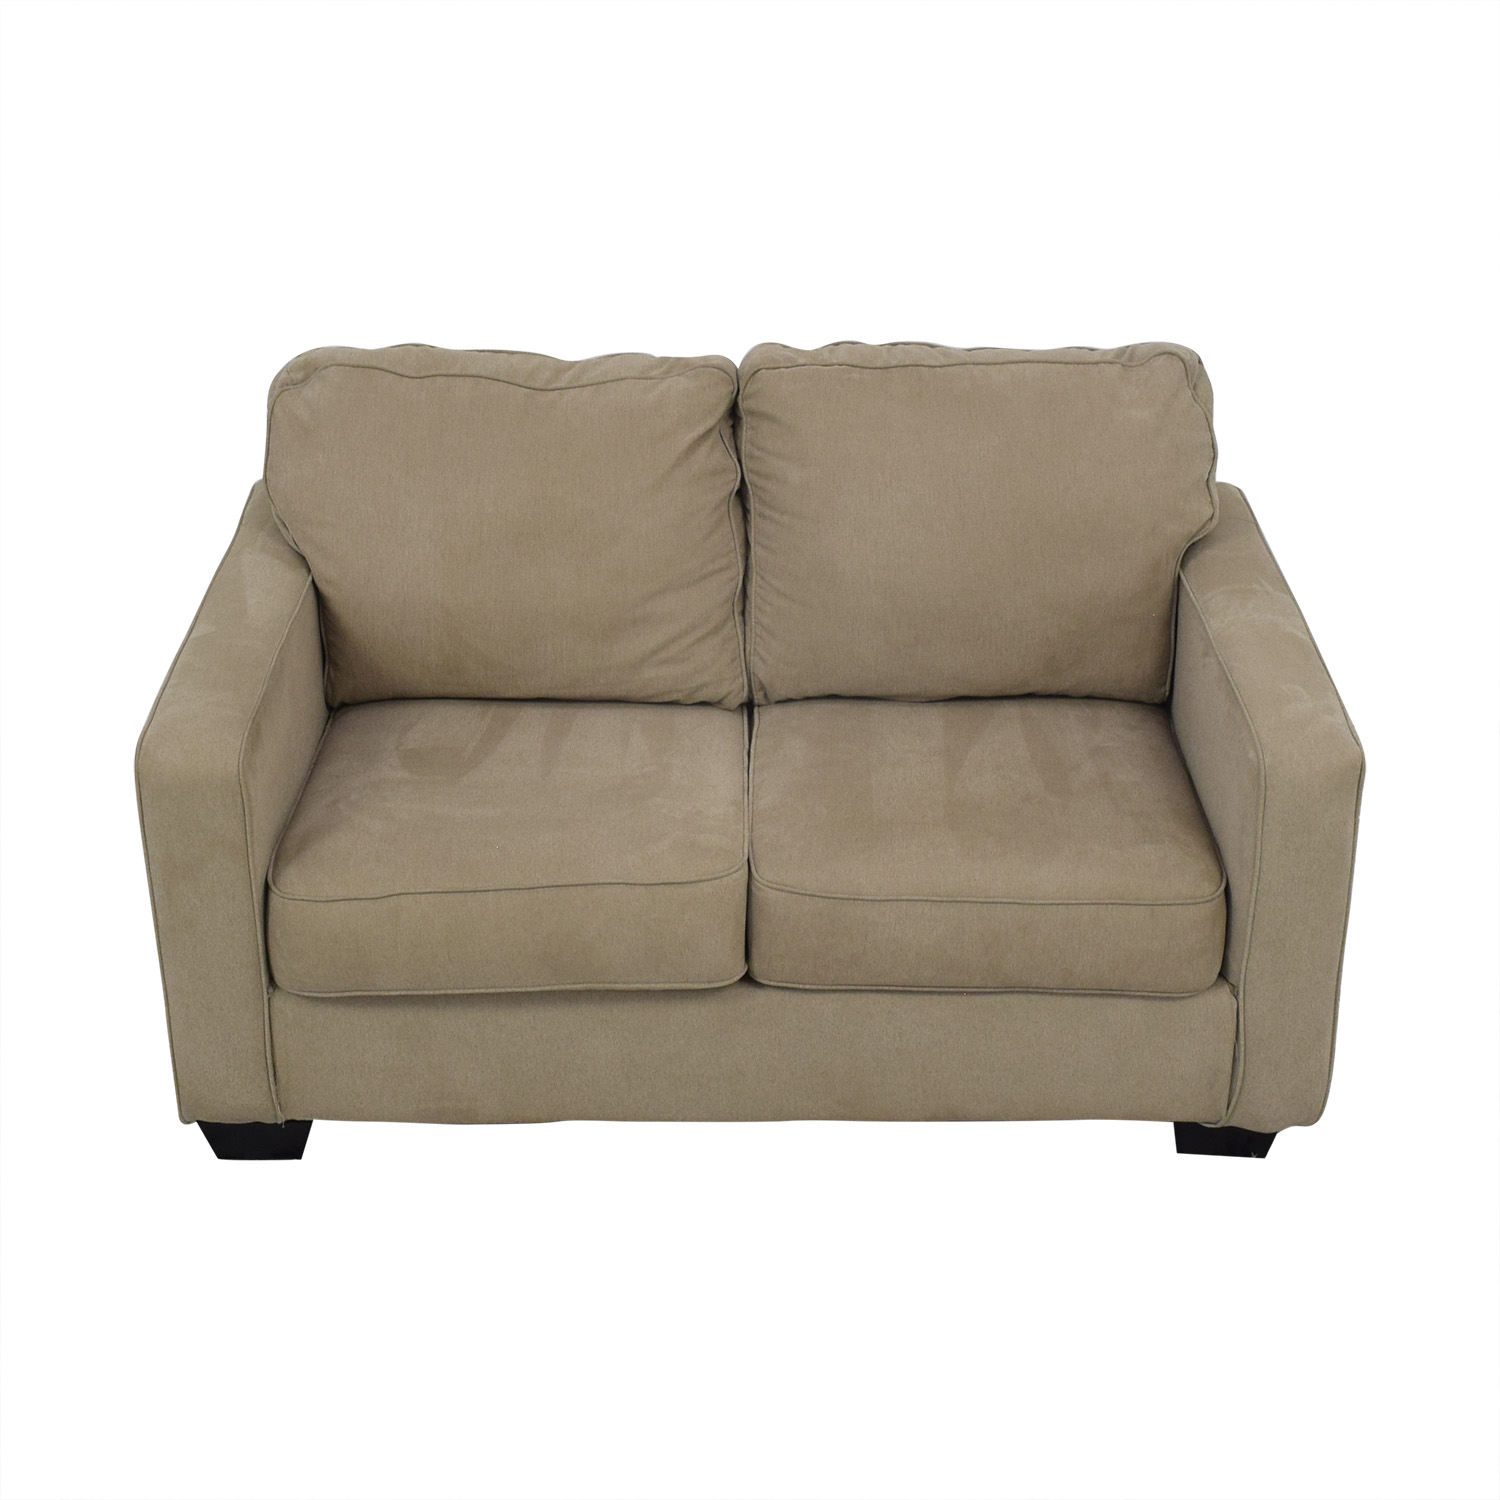 Jennifer Furniture Jennifer Furniture Alenya Loveseat price